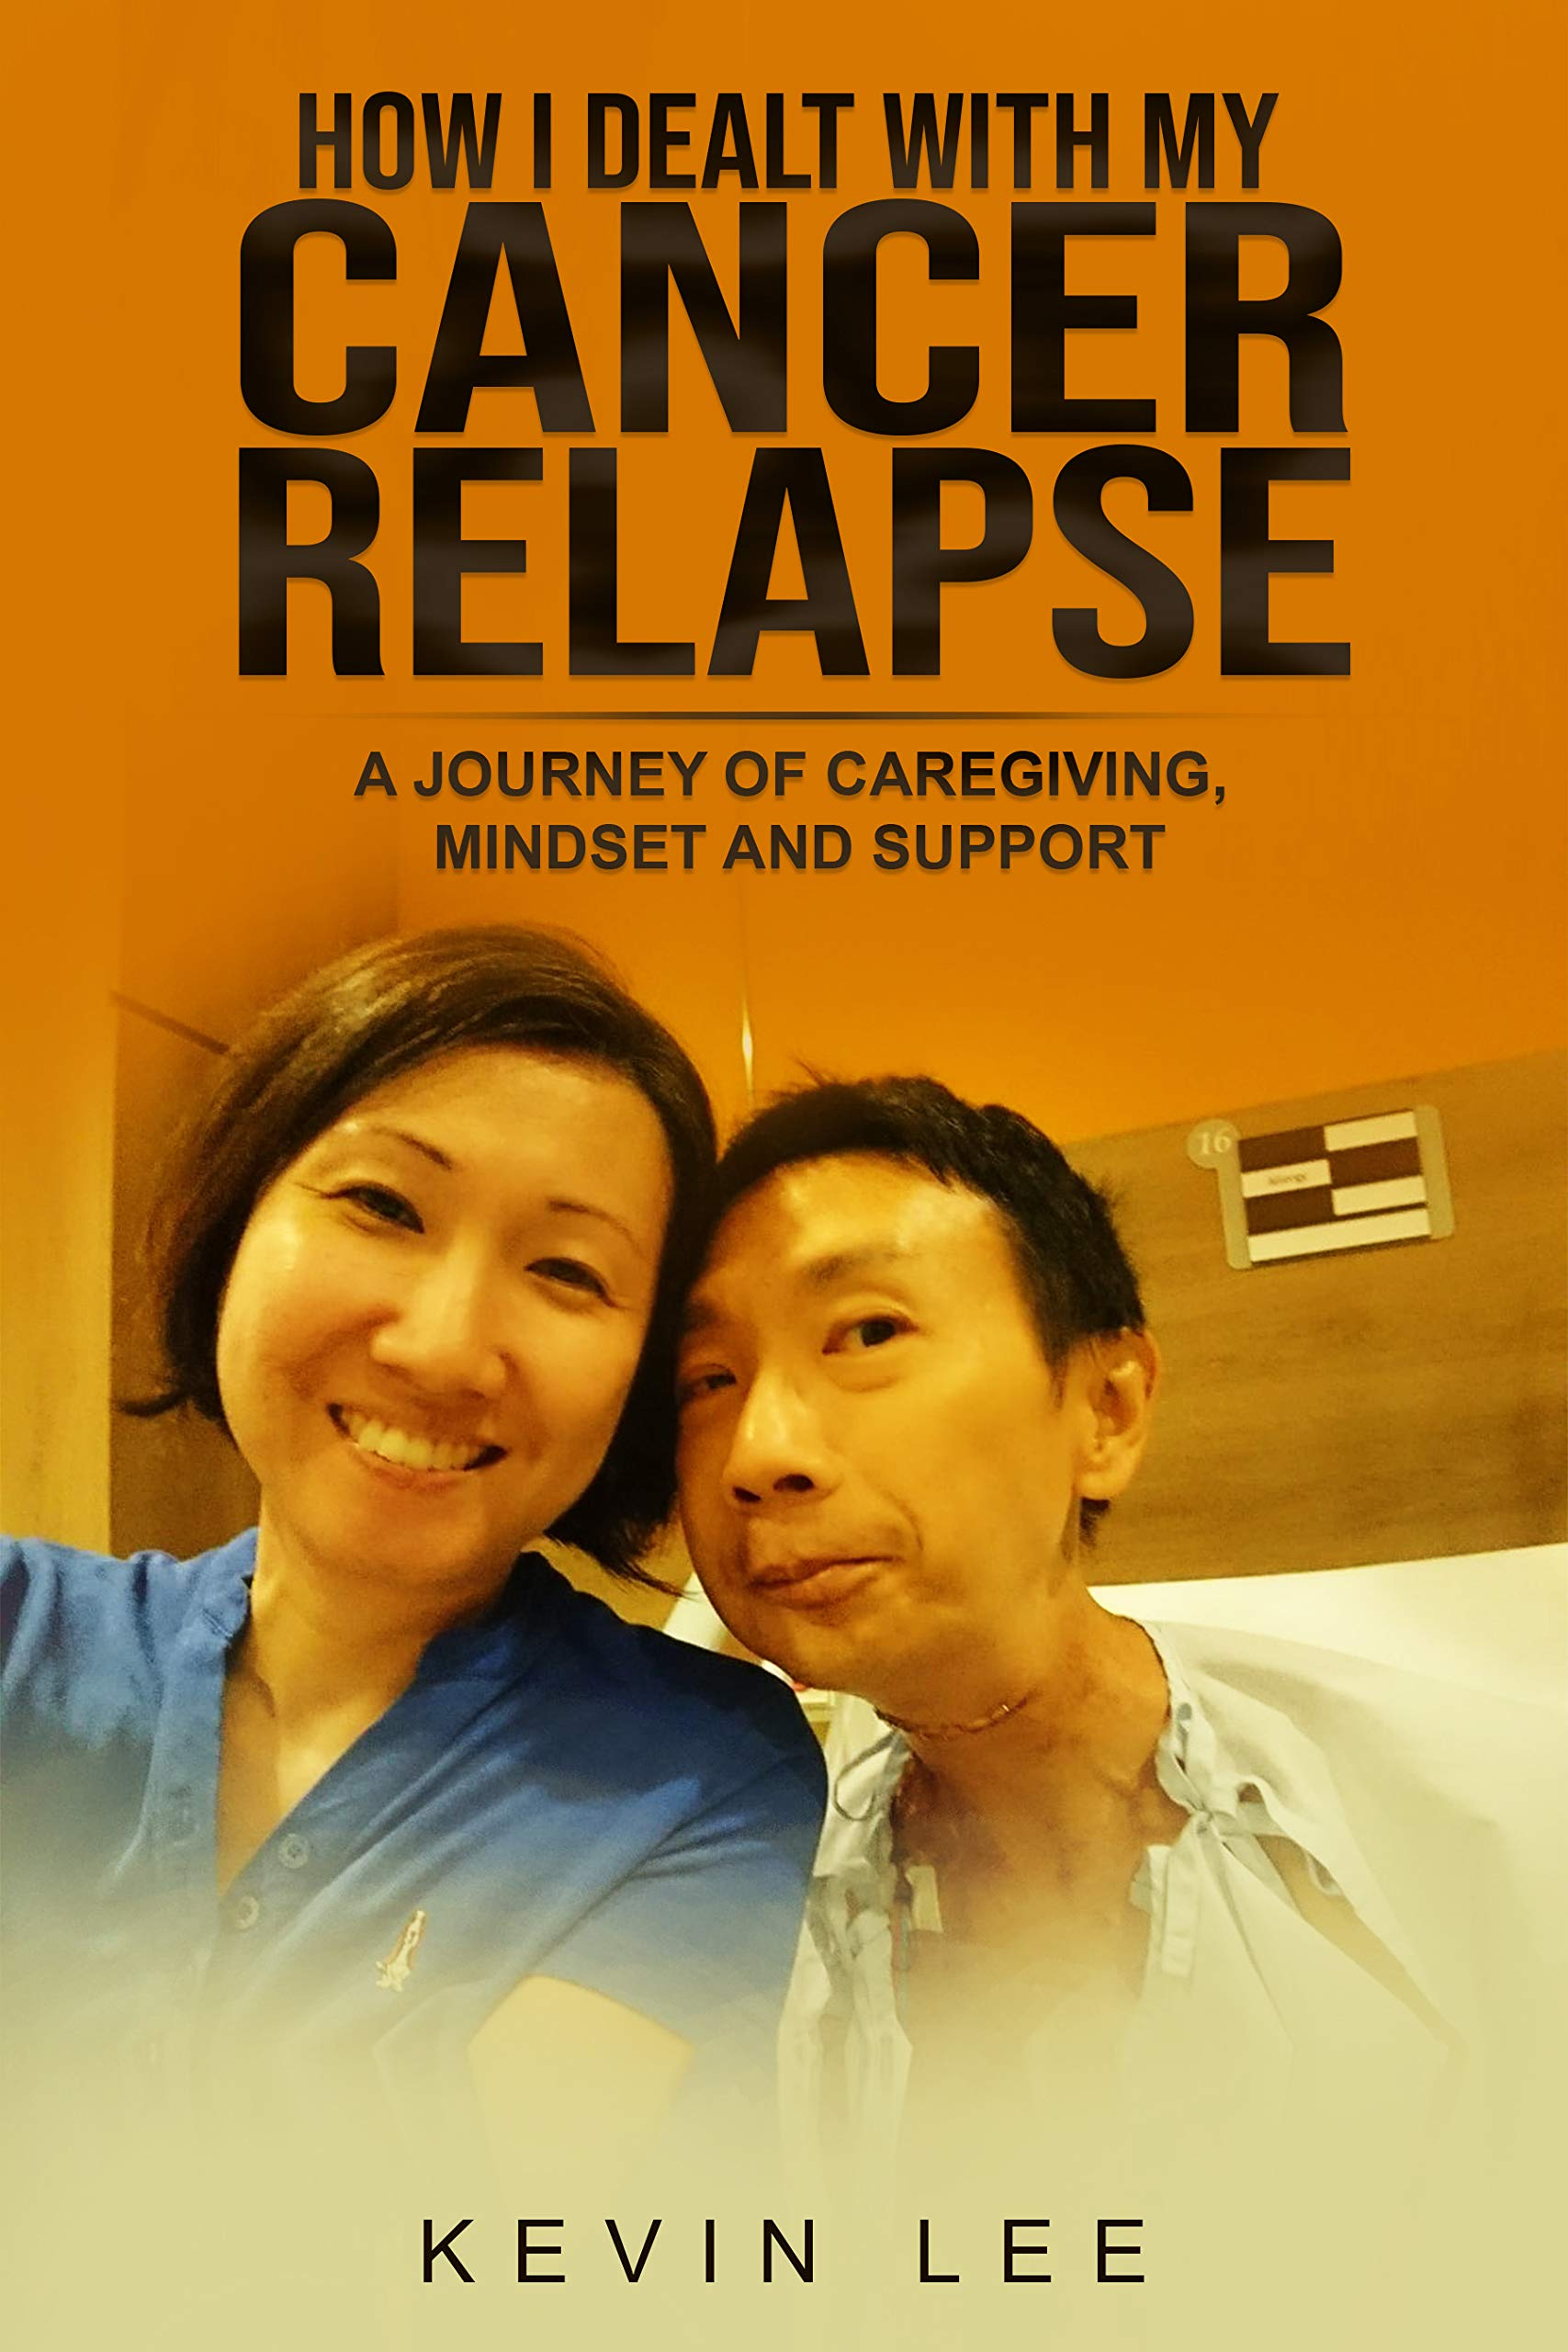 How I Dealt with My Cancer Relapse: A Journey of Caregiving, Mindset, and Support (Our Journey With Cancer (A Story About Faith, Hope and Love) Book 2)